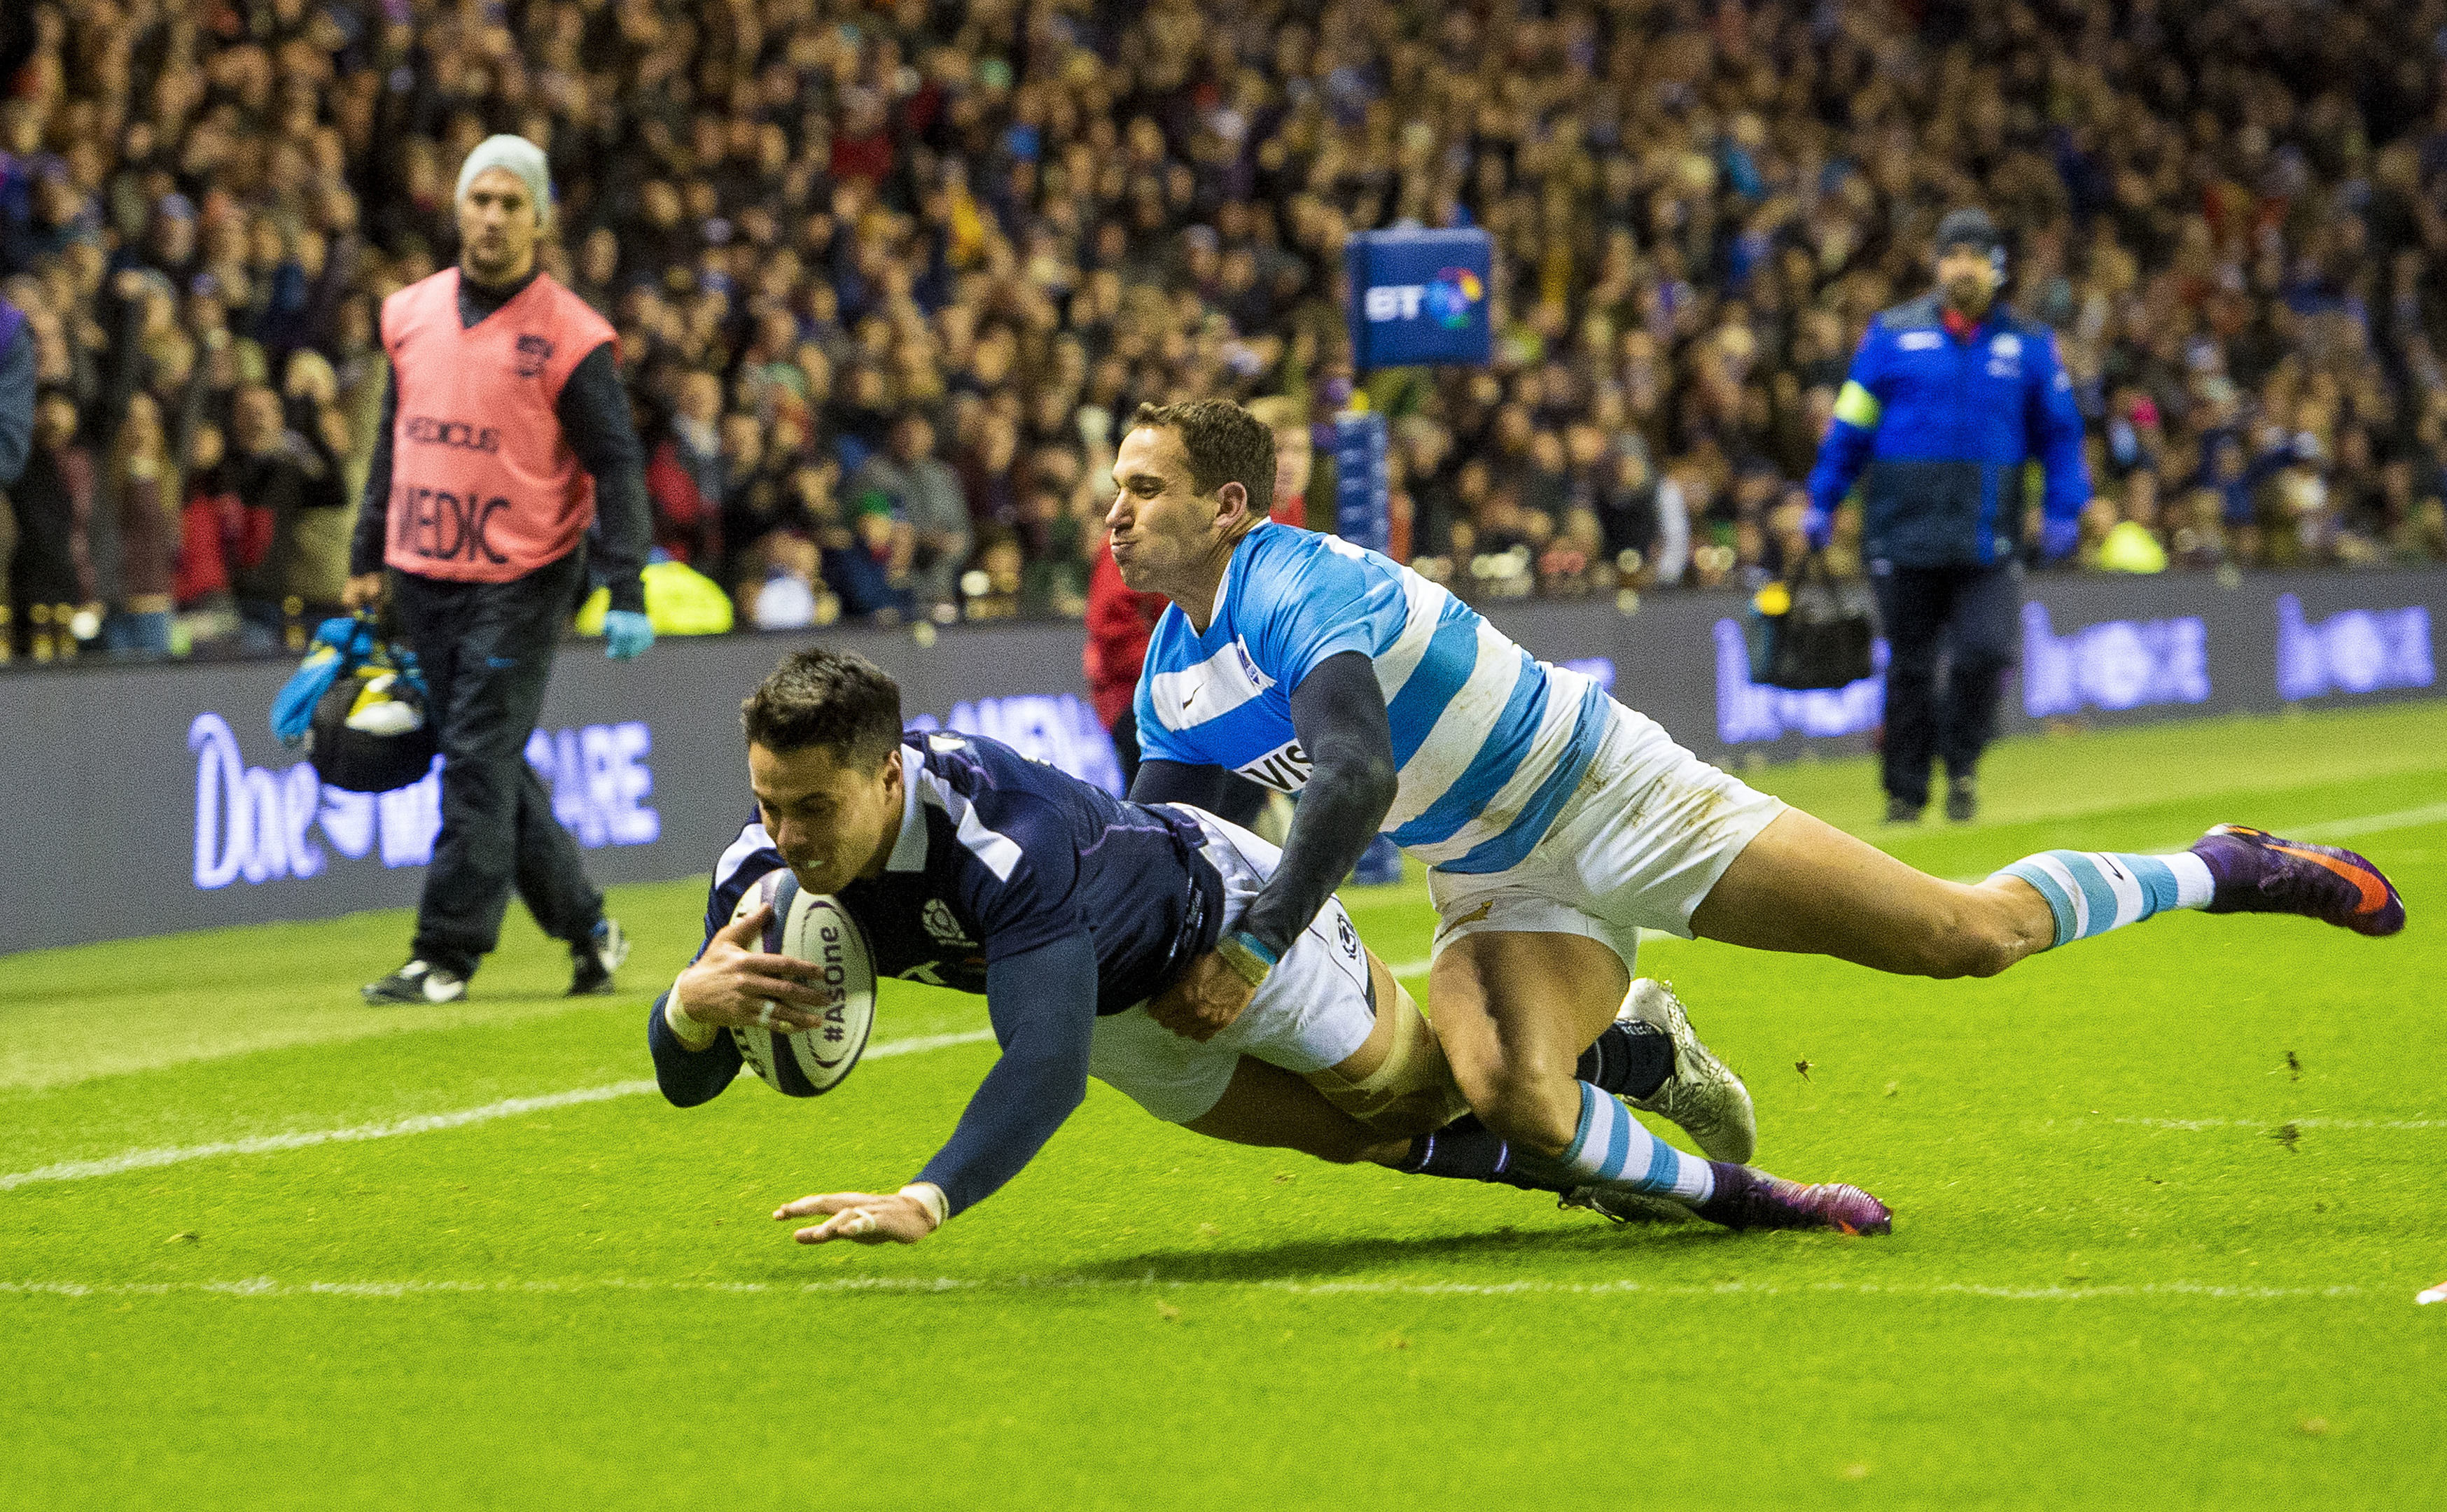 Sean Maitland scores Scotland's try against Argentina.